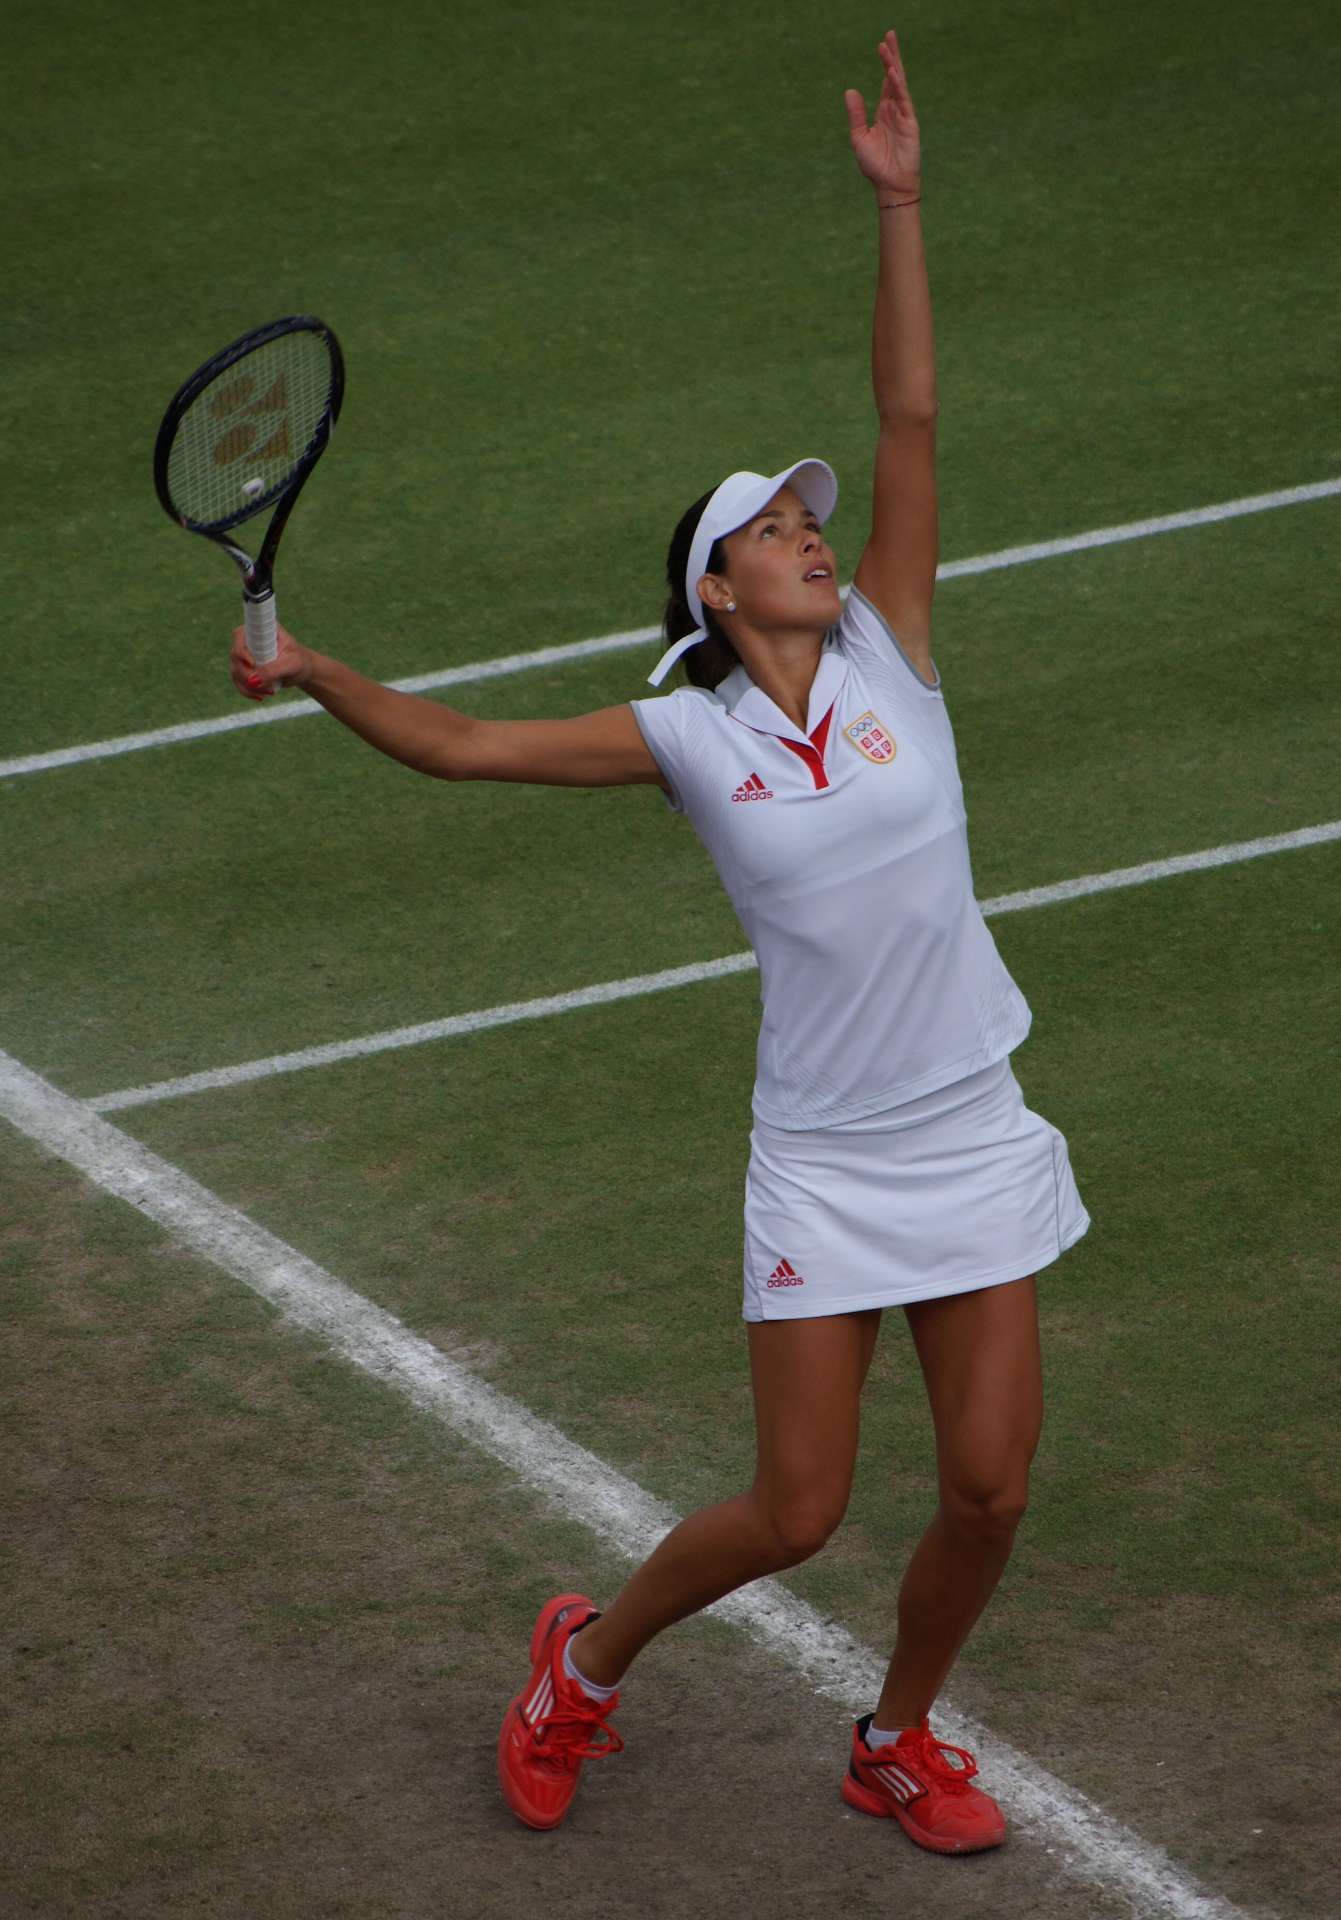 Ana Invanovic playing tennis